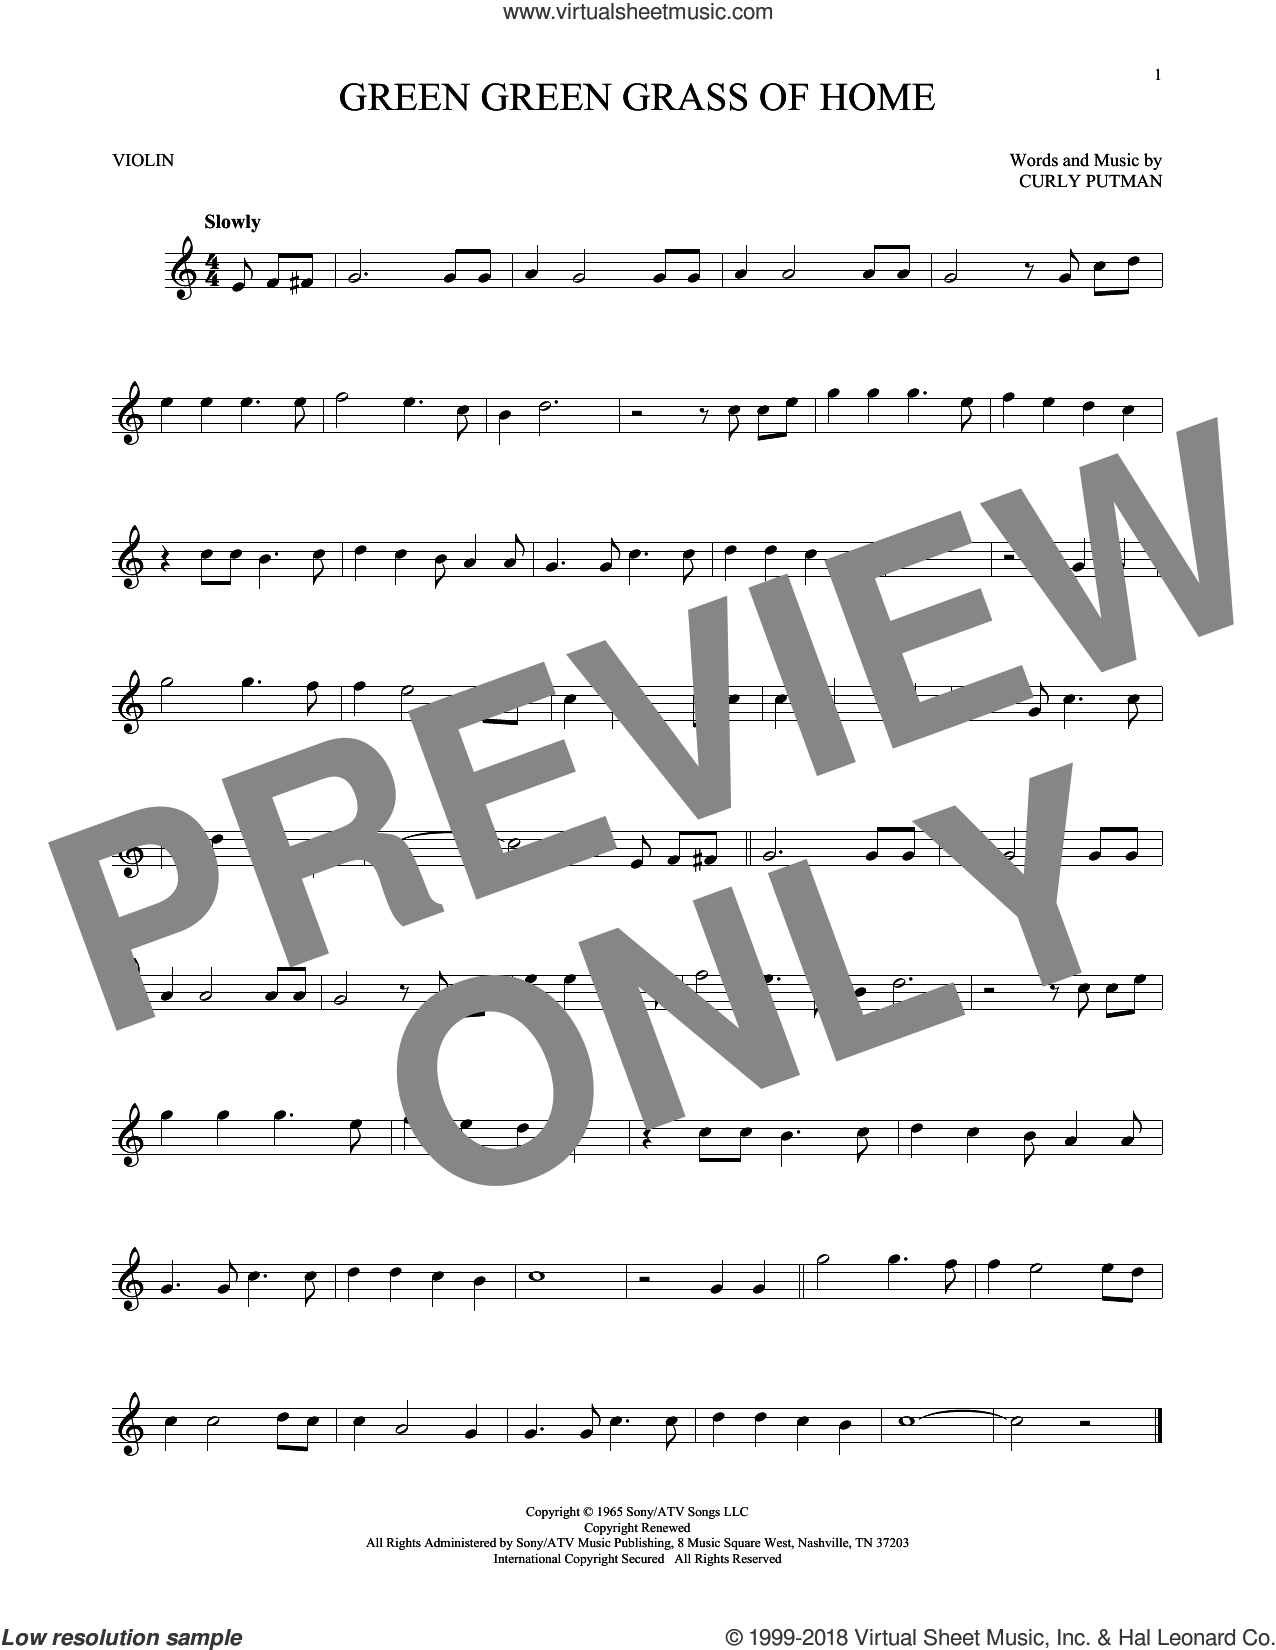 Green Green Grass Of Home sheet music for violin solo by Curly Putman, Elvis Presley, Porter Wagoner and Tom Jones, intermediate skill level